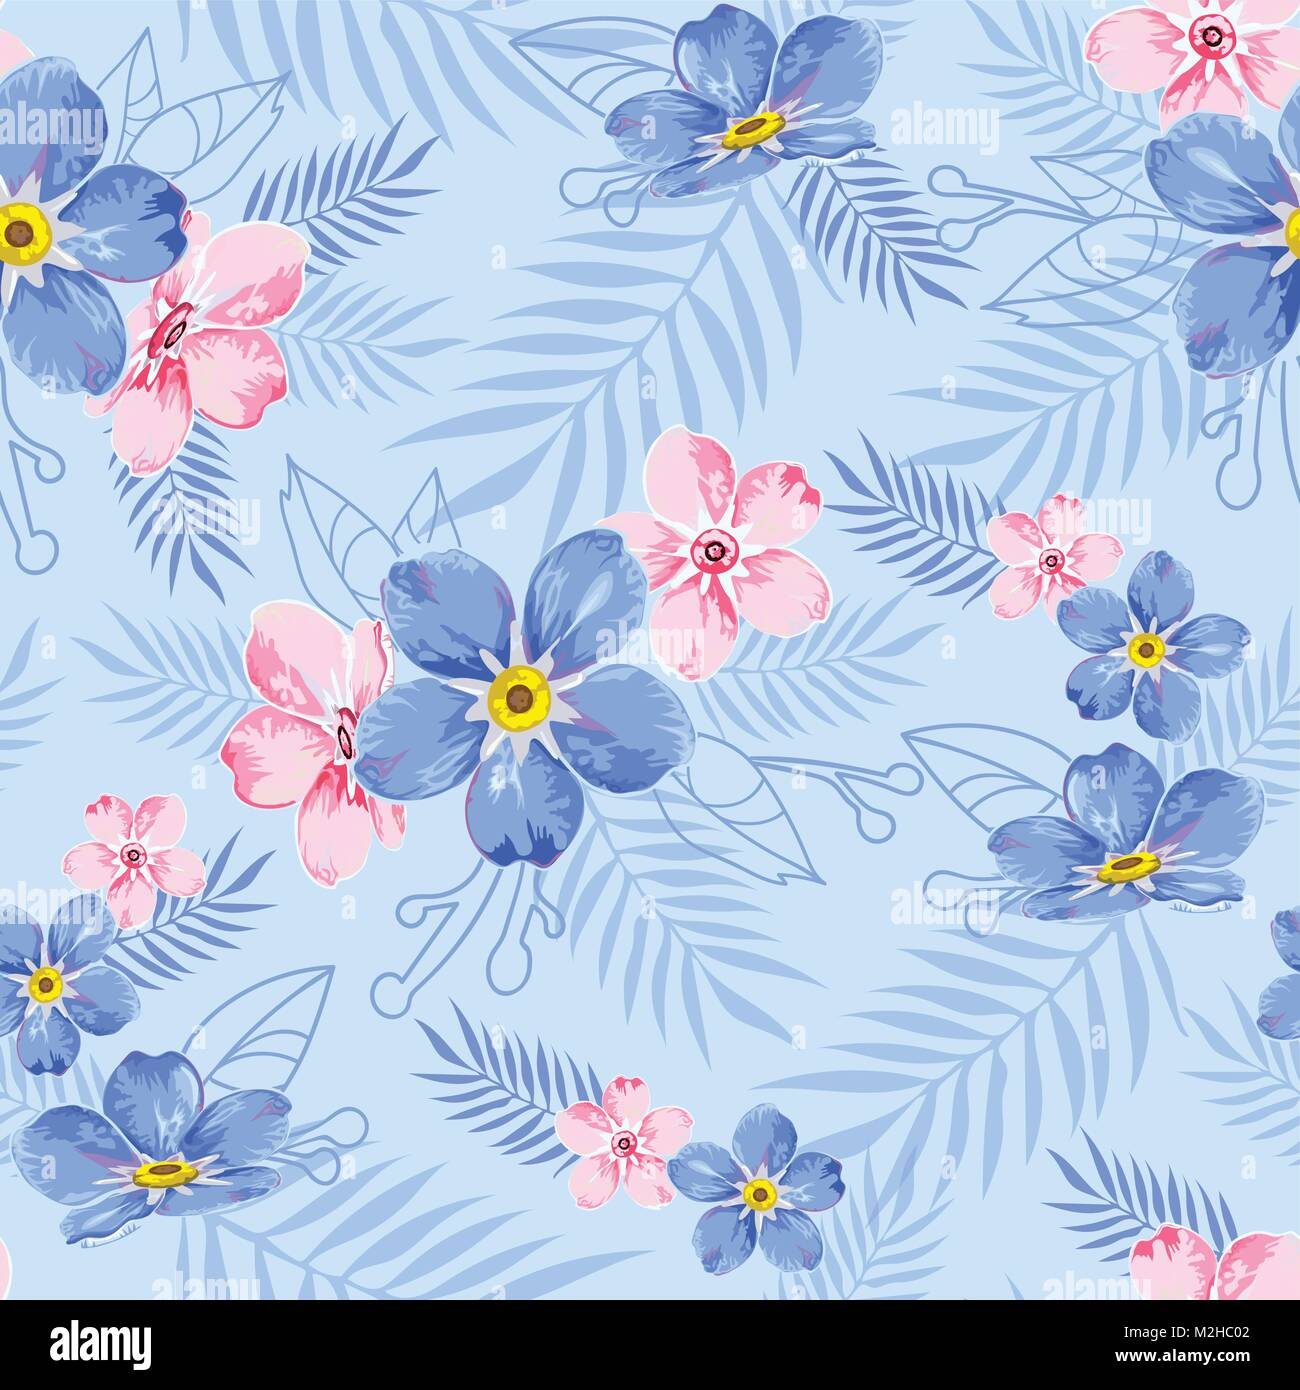 Seamless Floral Pattern Background In Blue With Blue And Pink